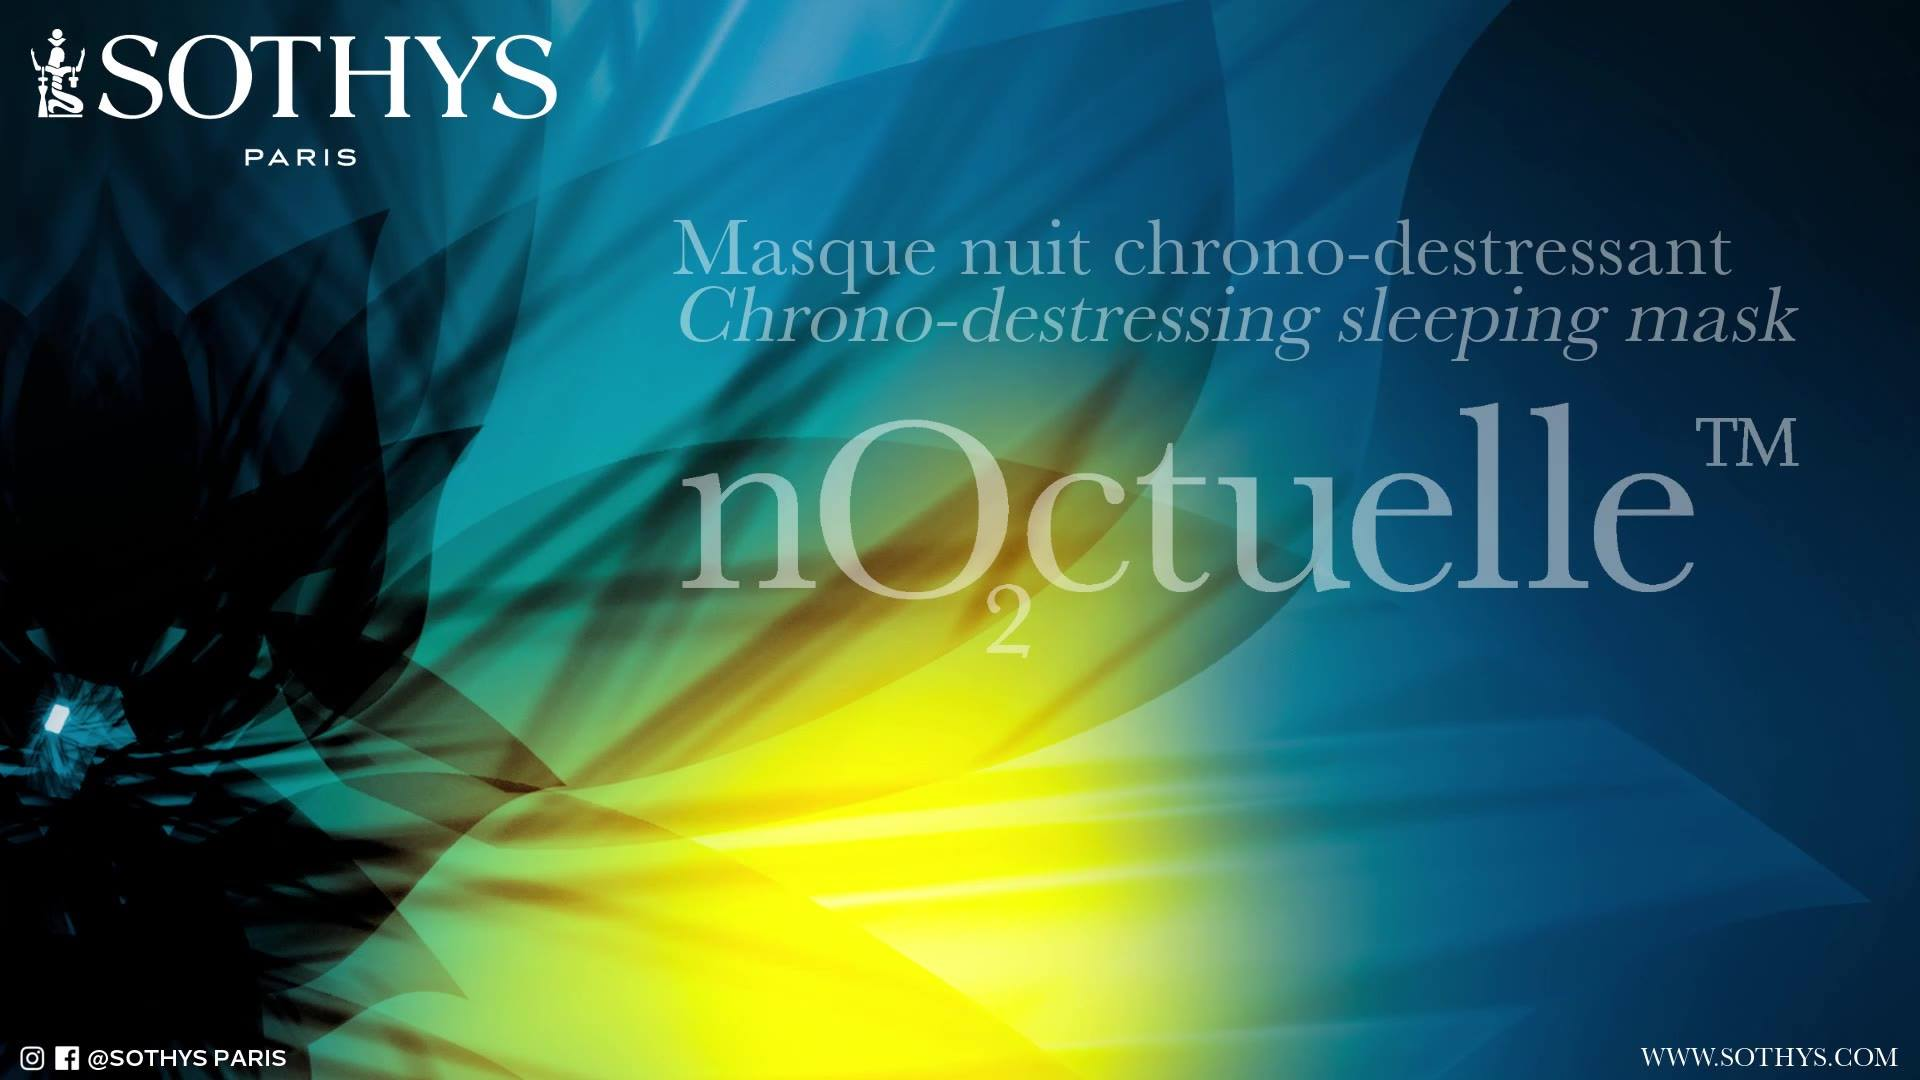 NEW nO2ctuelle™ 🌙  Sleepless nights, a hectic lifestyle, the harshness of daily life . . . every day your skin is under strain.   🎥 Discover the video showing how to apply the Chrono-destressing Sleeping Mask!  🎥 Upon waking, the skin is visibly repl